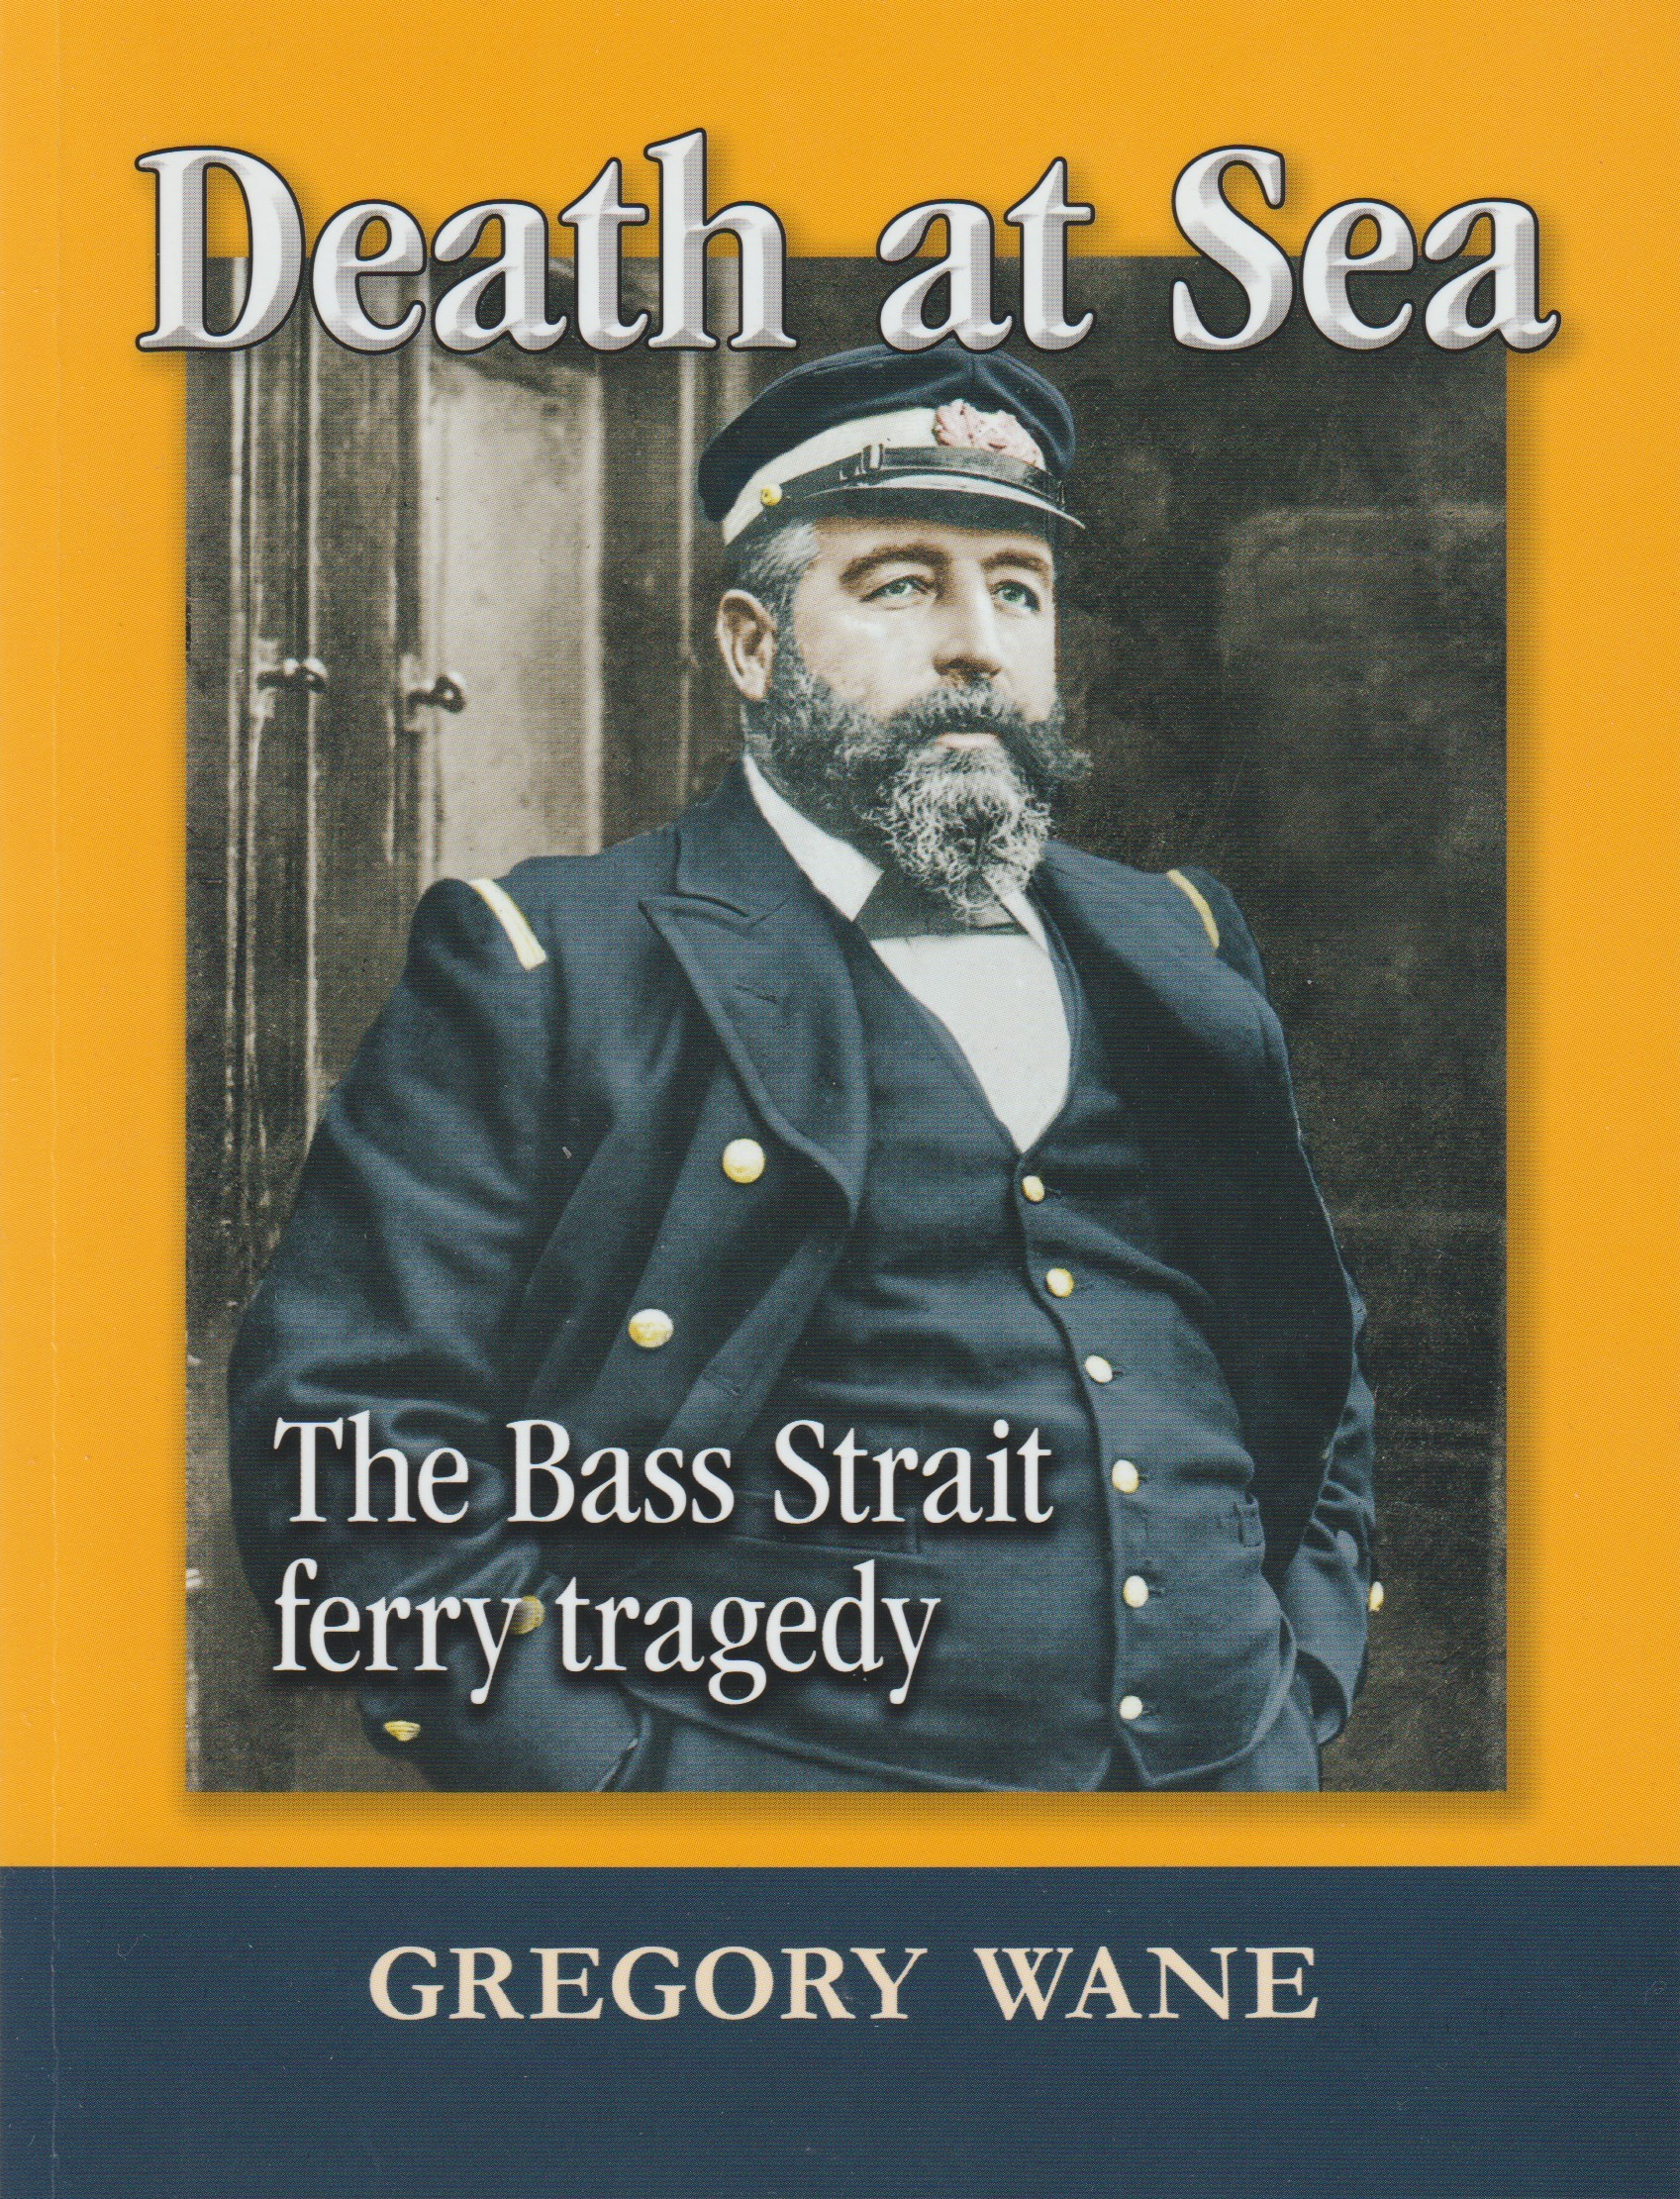 Death at Sea - the Bass Strait ferry tragedy